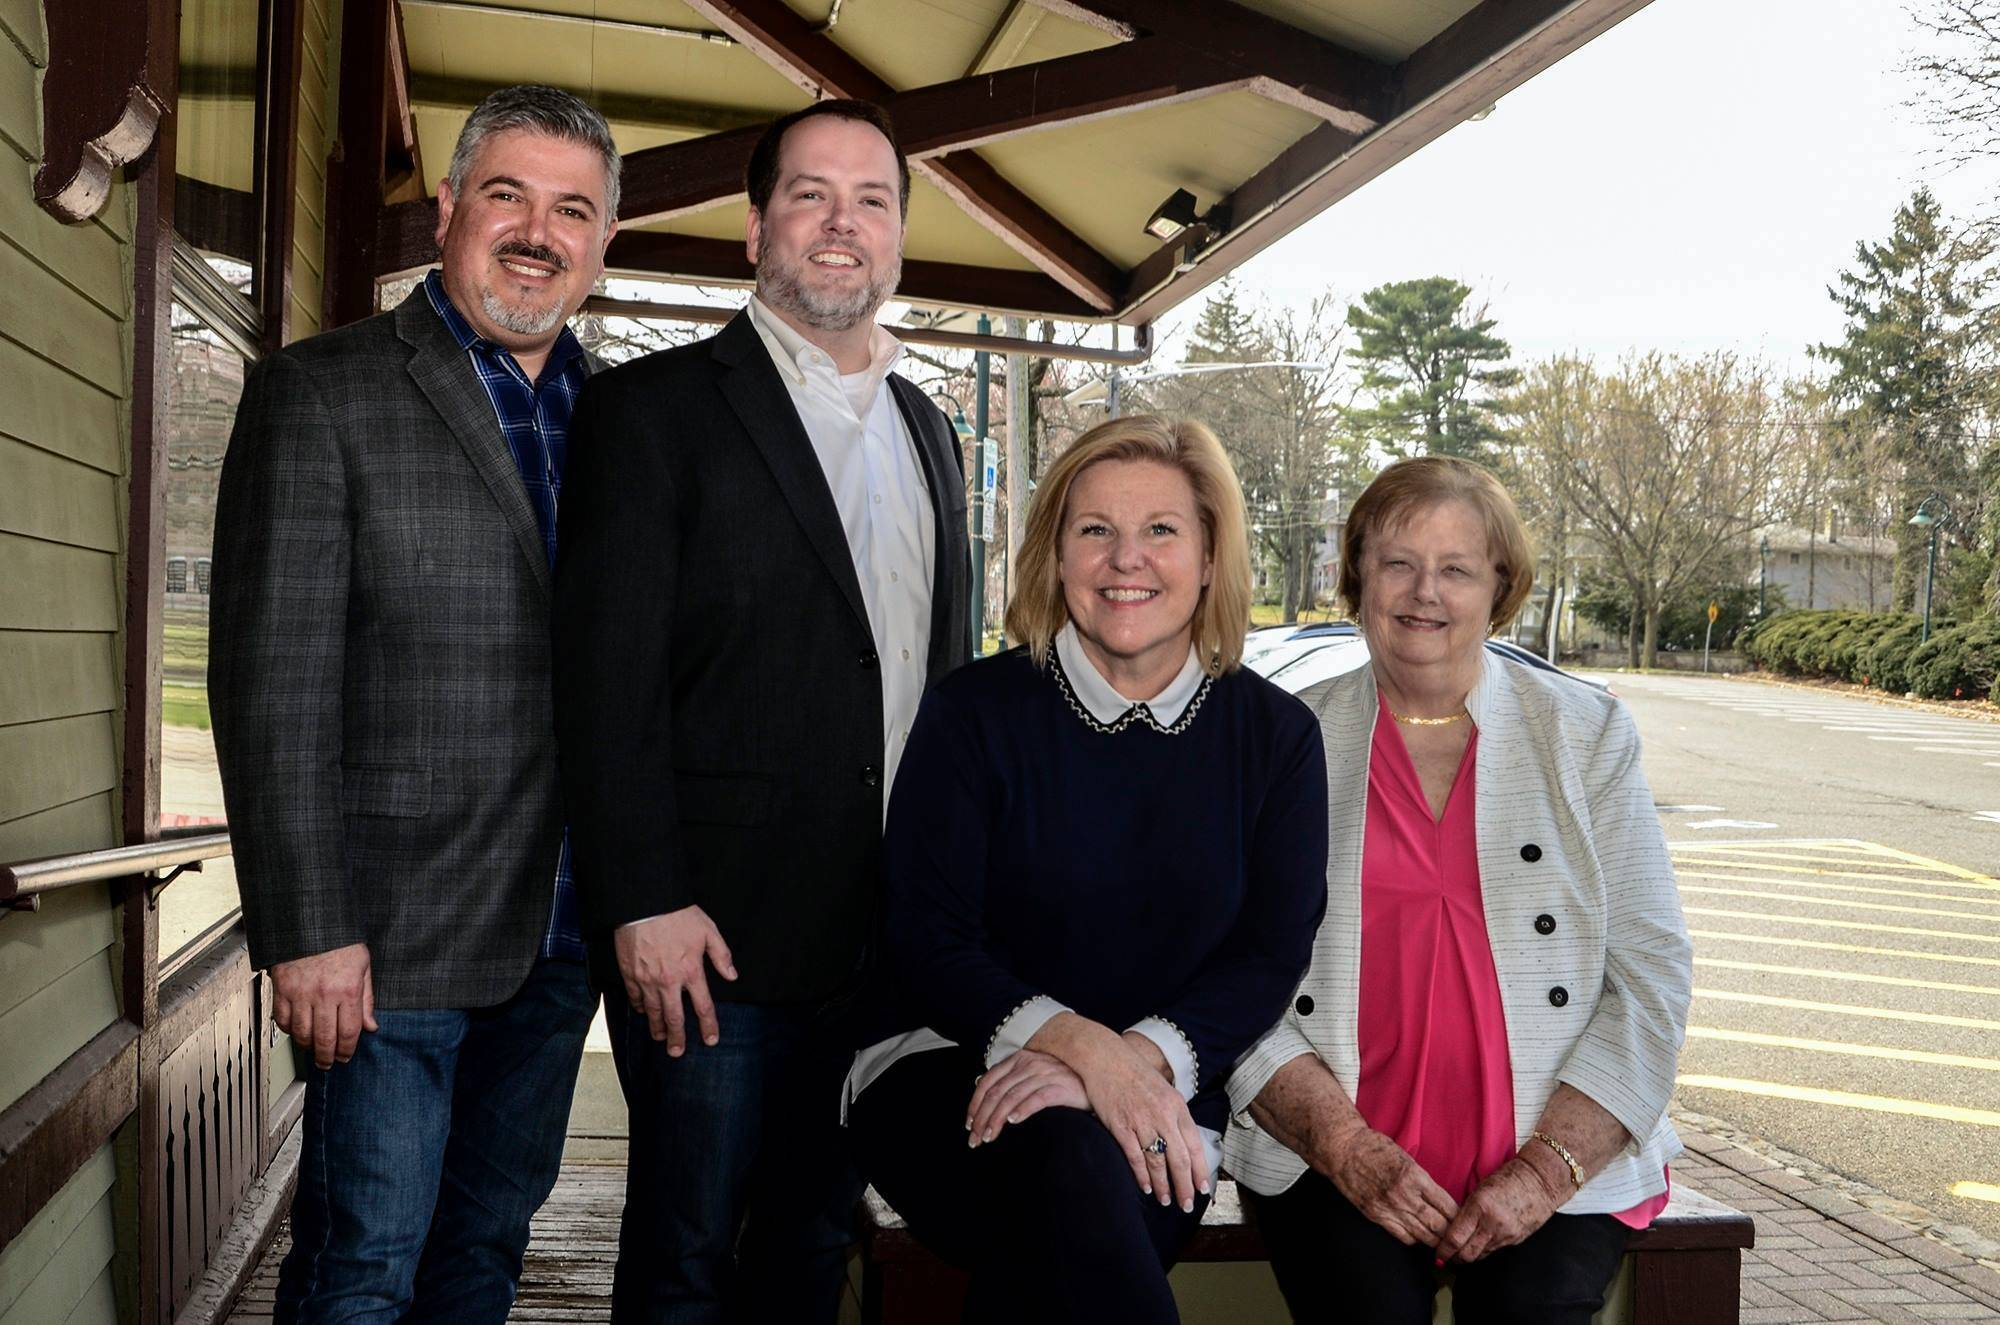 Fanwood Councilman Jeff Banks, candidate Kevin Boris, Mayor Colleen Mahr and Councilwoman Kathy Mitchell are running on the Democratic ticket in 2019